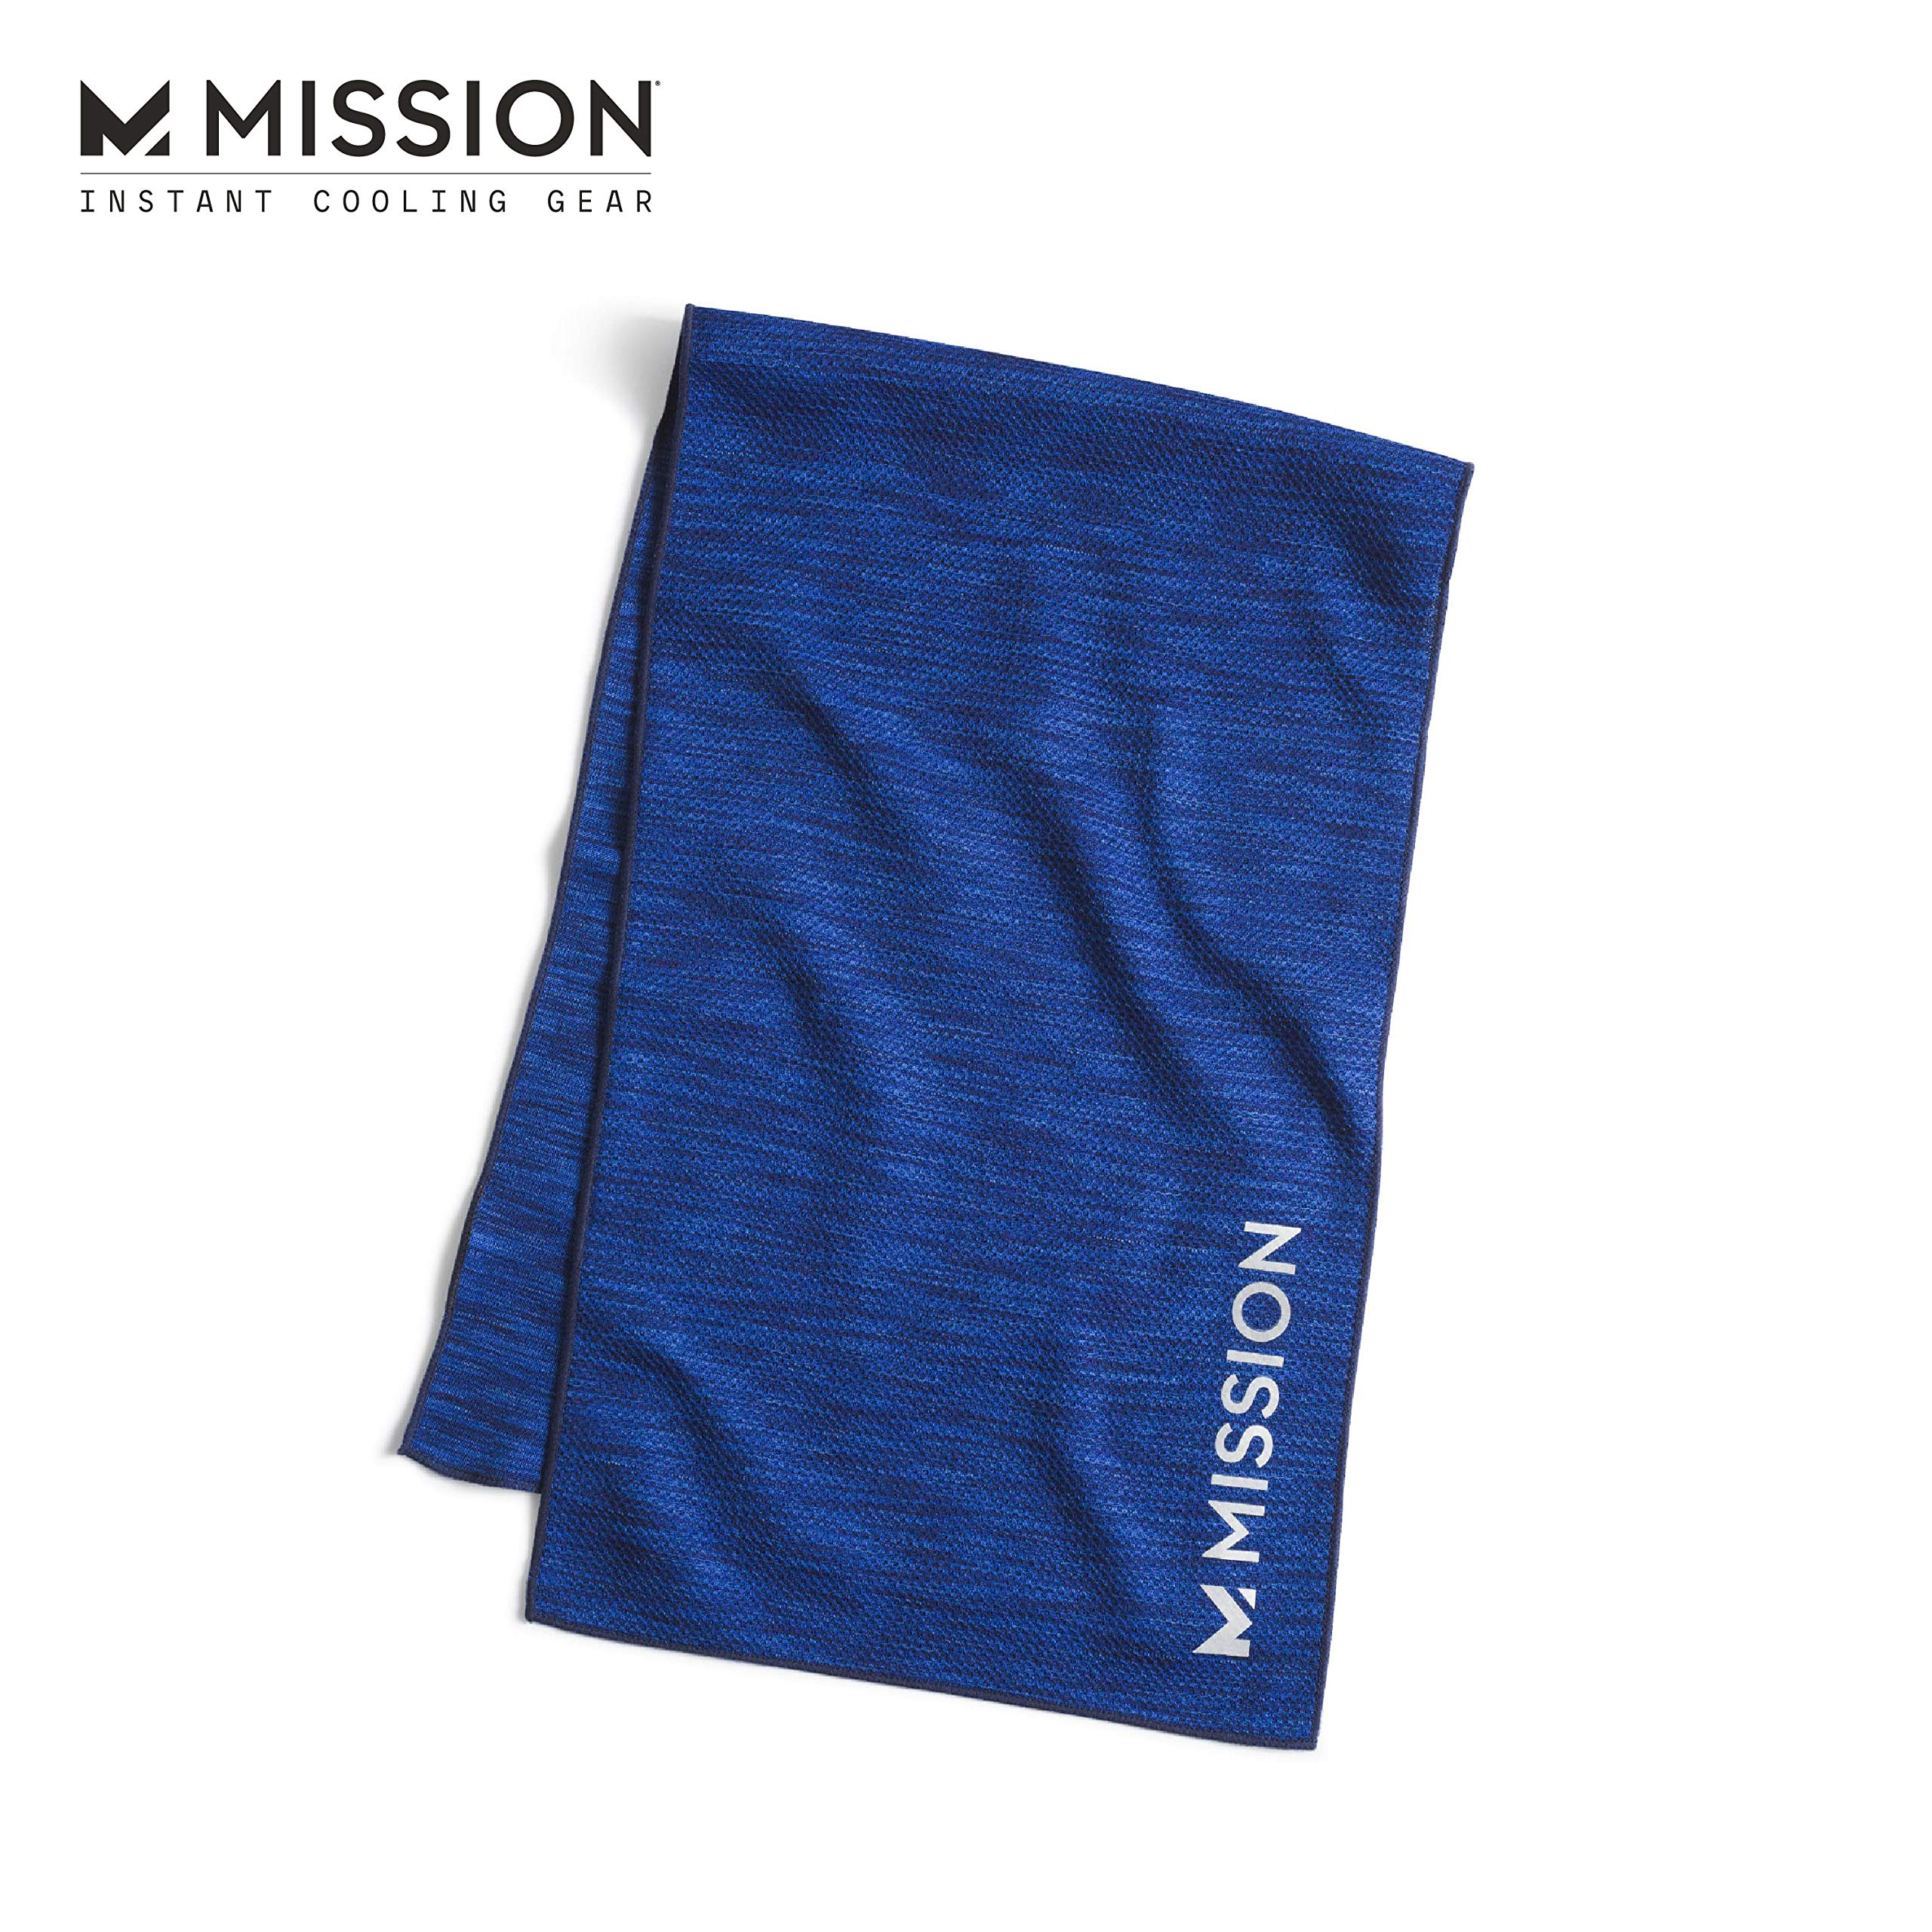 """MISSION Lite-Knit Cooling Towel Instant Evaporative Cooling, Lightweight Knit Fabric, Cools Instantly When Wet, UPF 50 Sun Protection, Yoga, Golf, Gym, Neck, 10"""" x 33"""""""